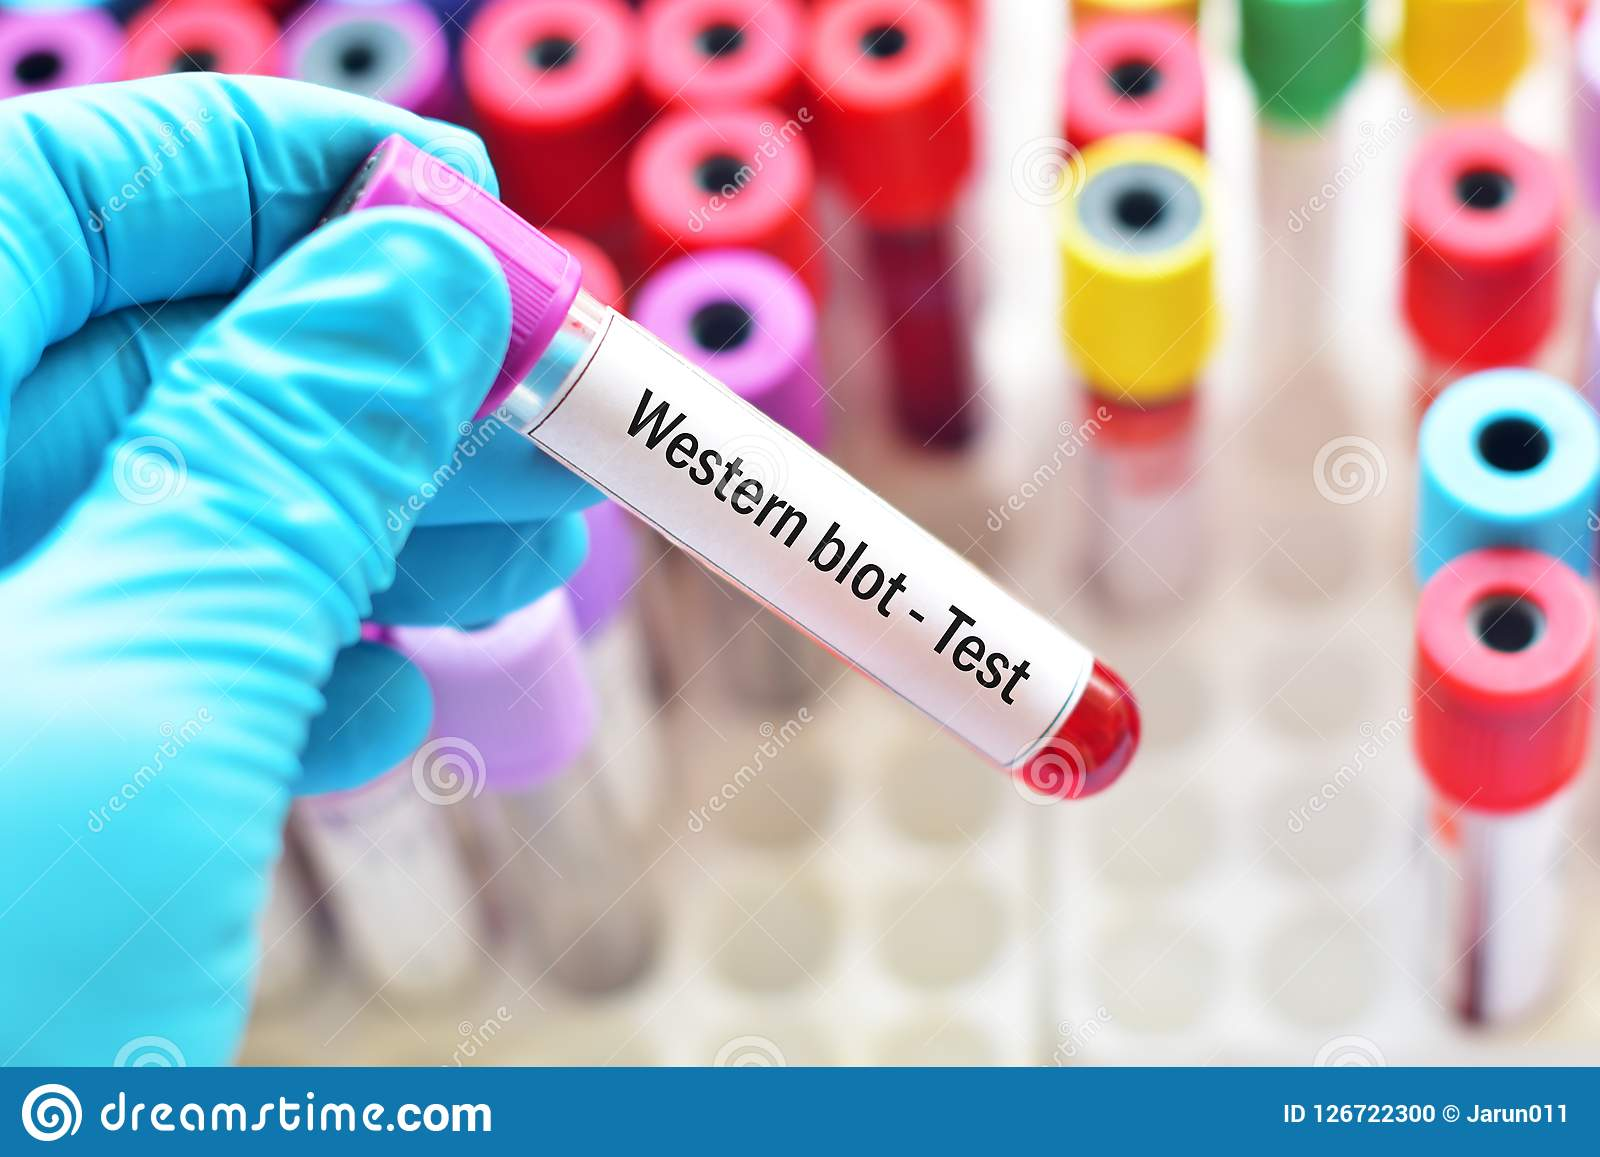 Blood sample tube for Western blot test